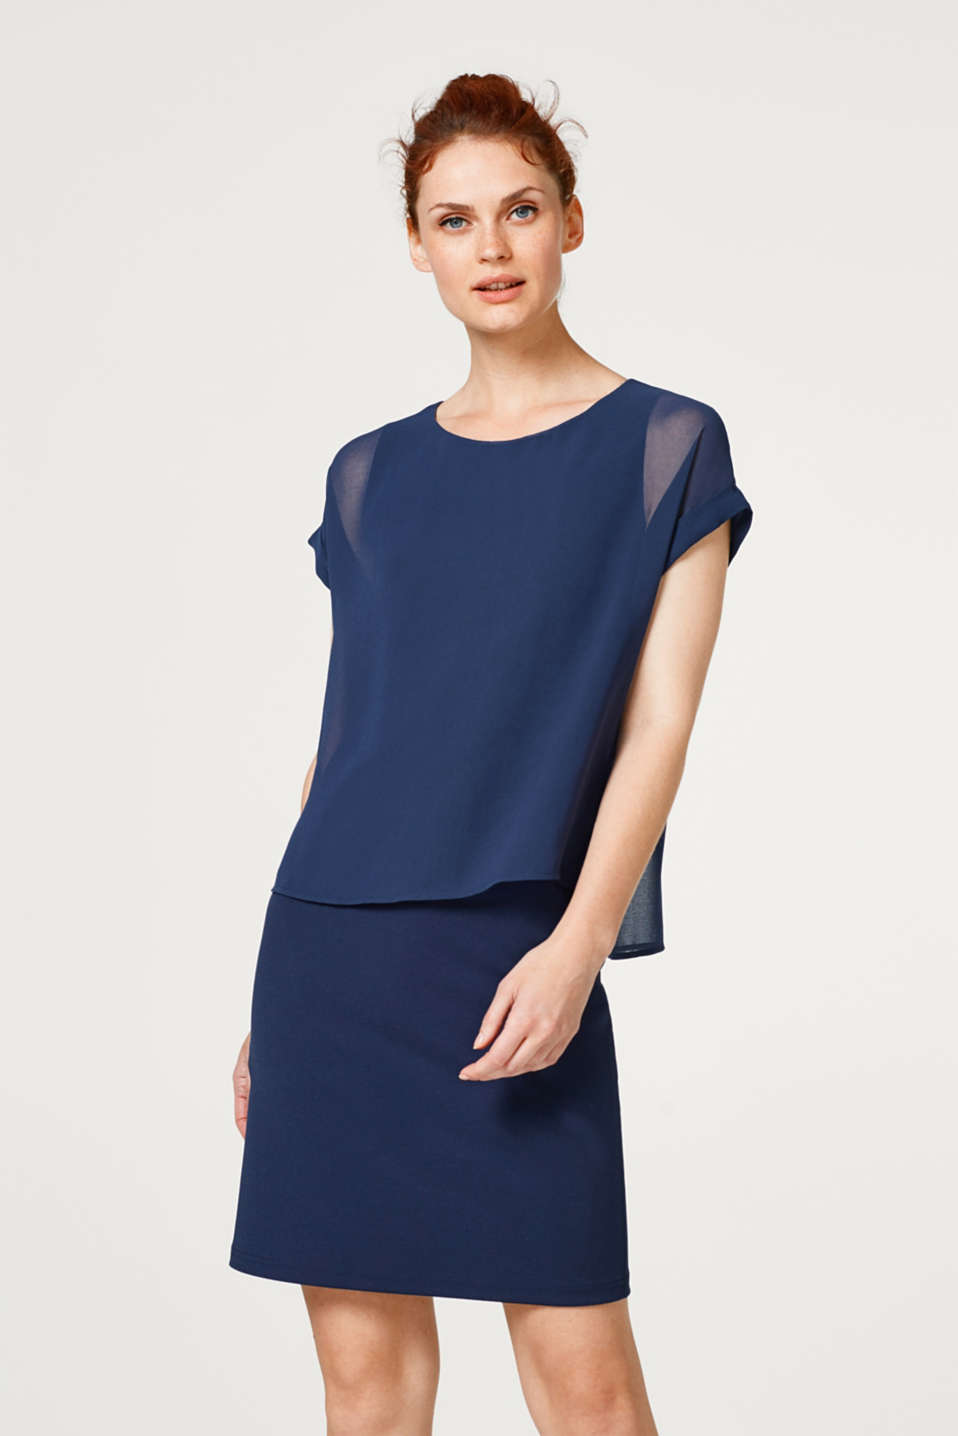 Esprit - Stretch jersey dress with layering